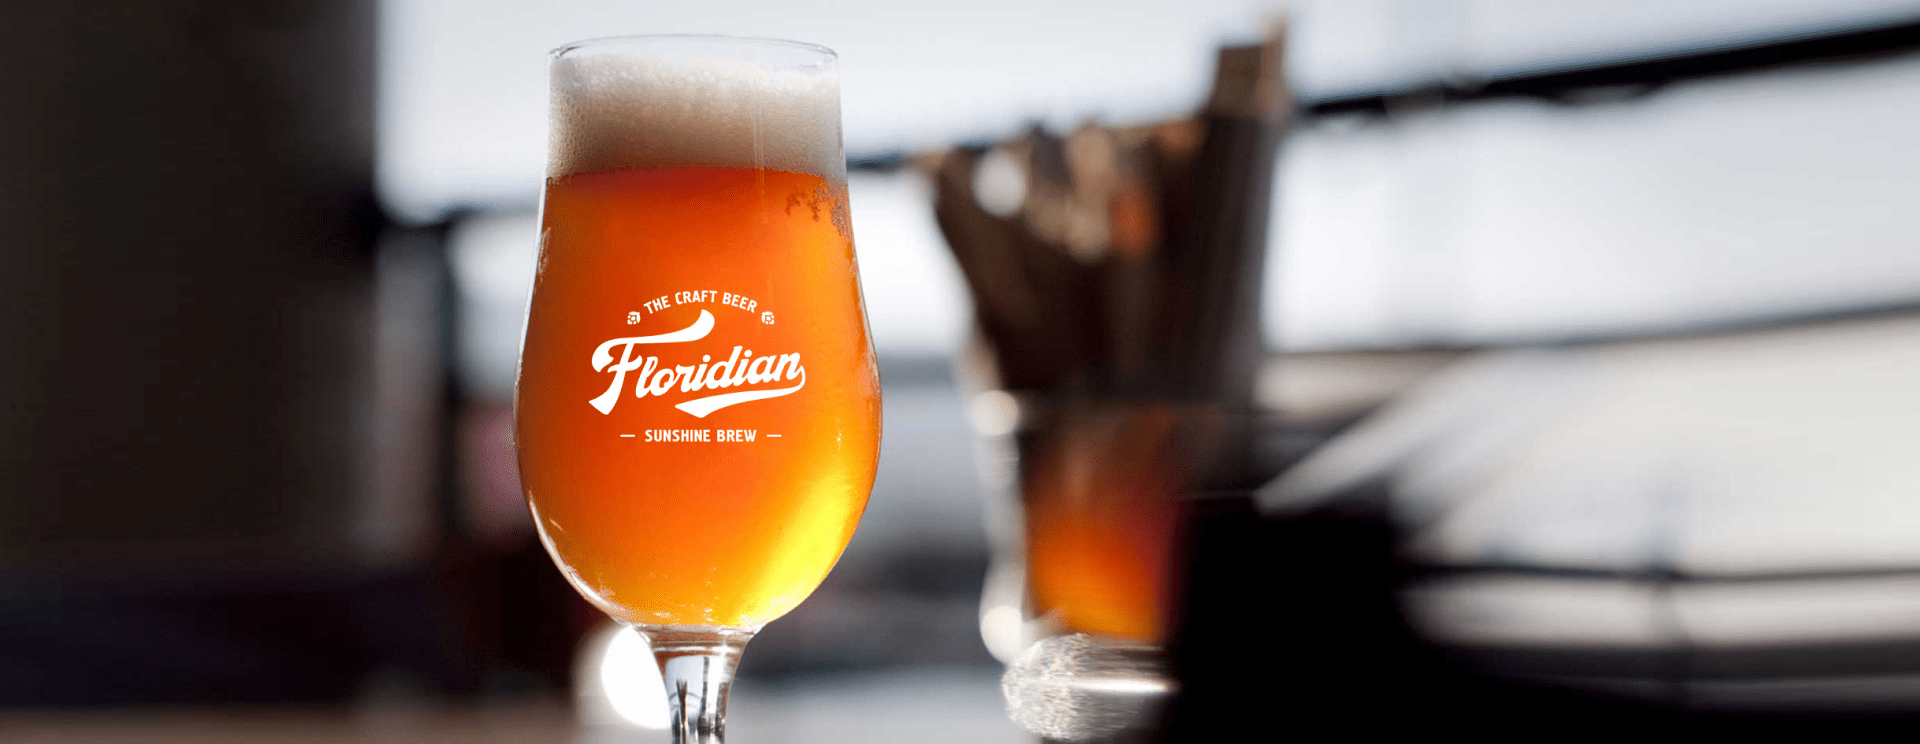 Case: development of brand components for a producer of  craft beer Floridian — Rubarb - Image - 1